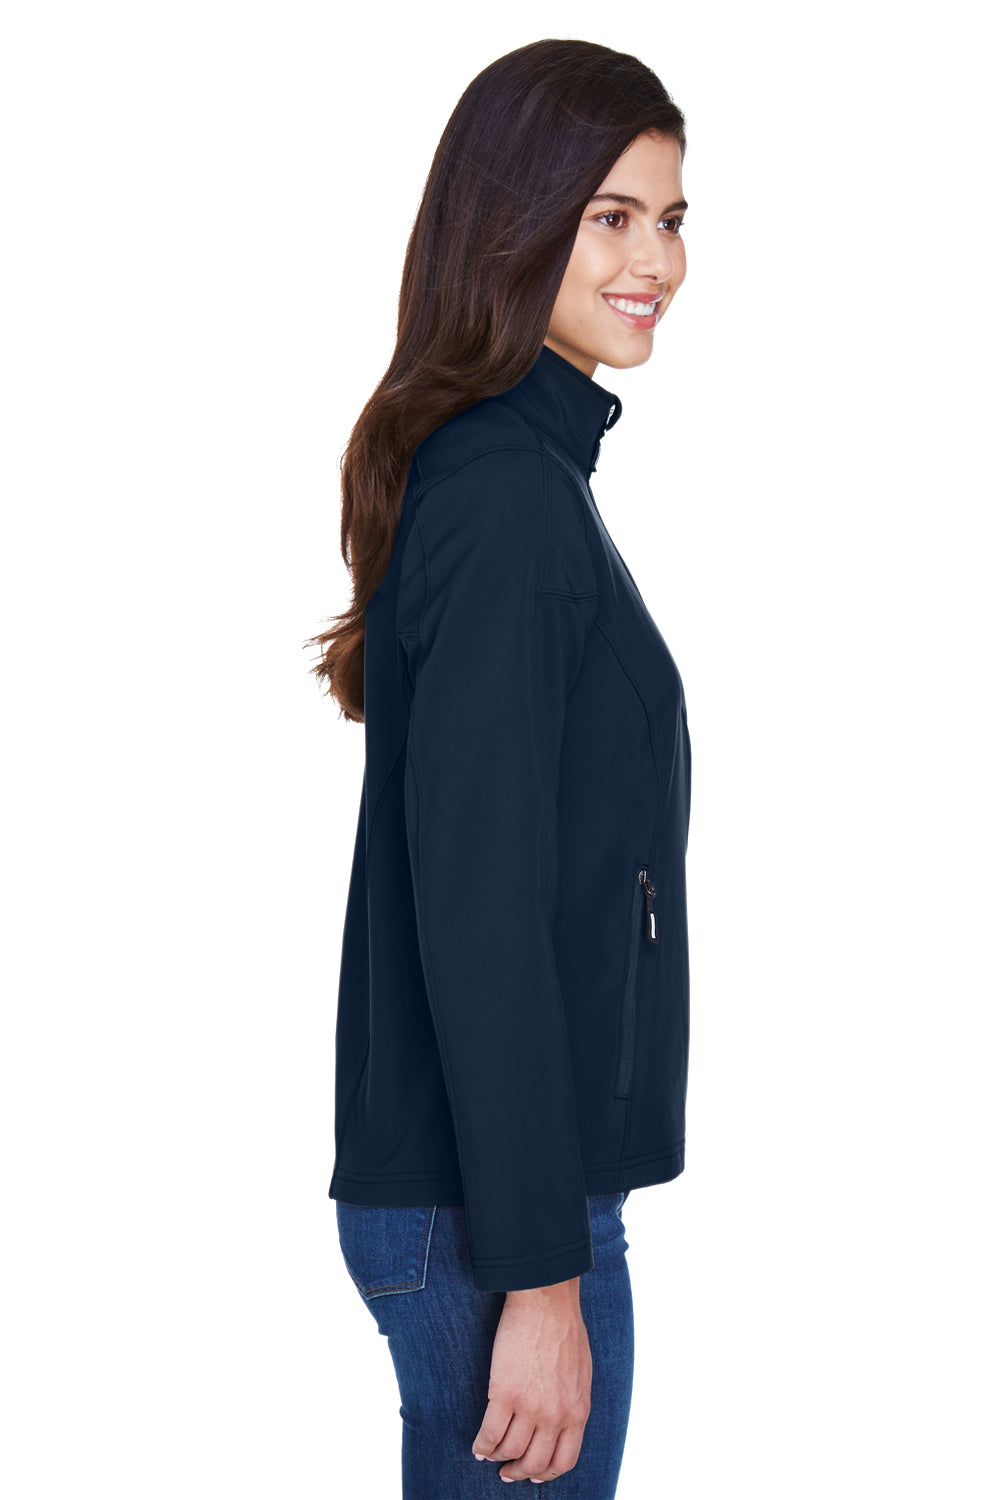 Core 365 78184 Womens Cruise Water Resistant Full Zip Jacket Navy Blue Side